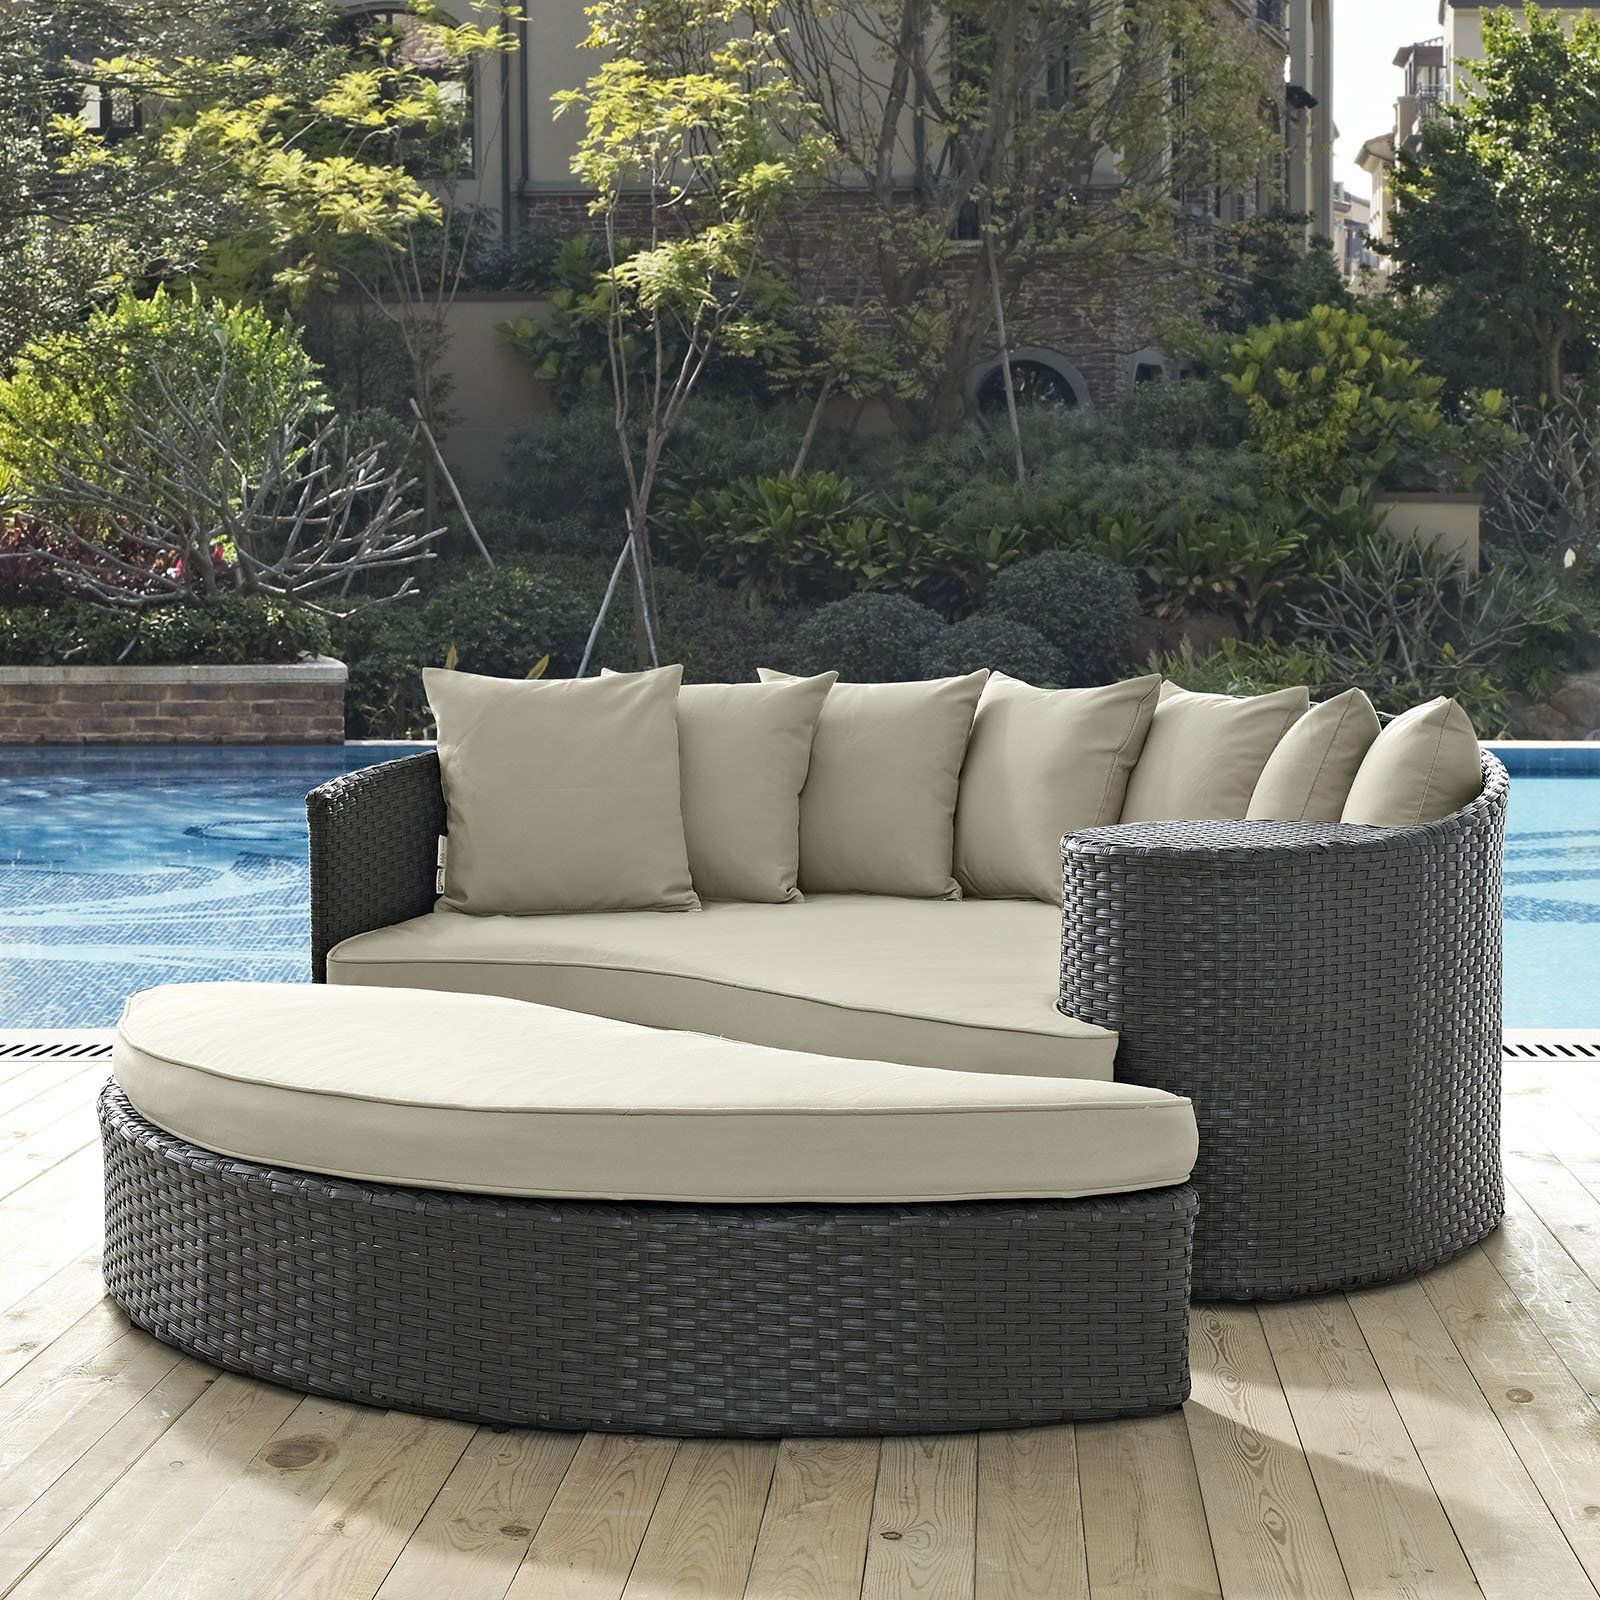 Modway Sojourn Wicker 2 Piece Outdoor Daybed Set – Eei 1982 For Widely Used Keiran Patio Daybeds With Cushions (View 14 of 20)